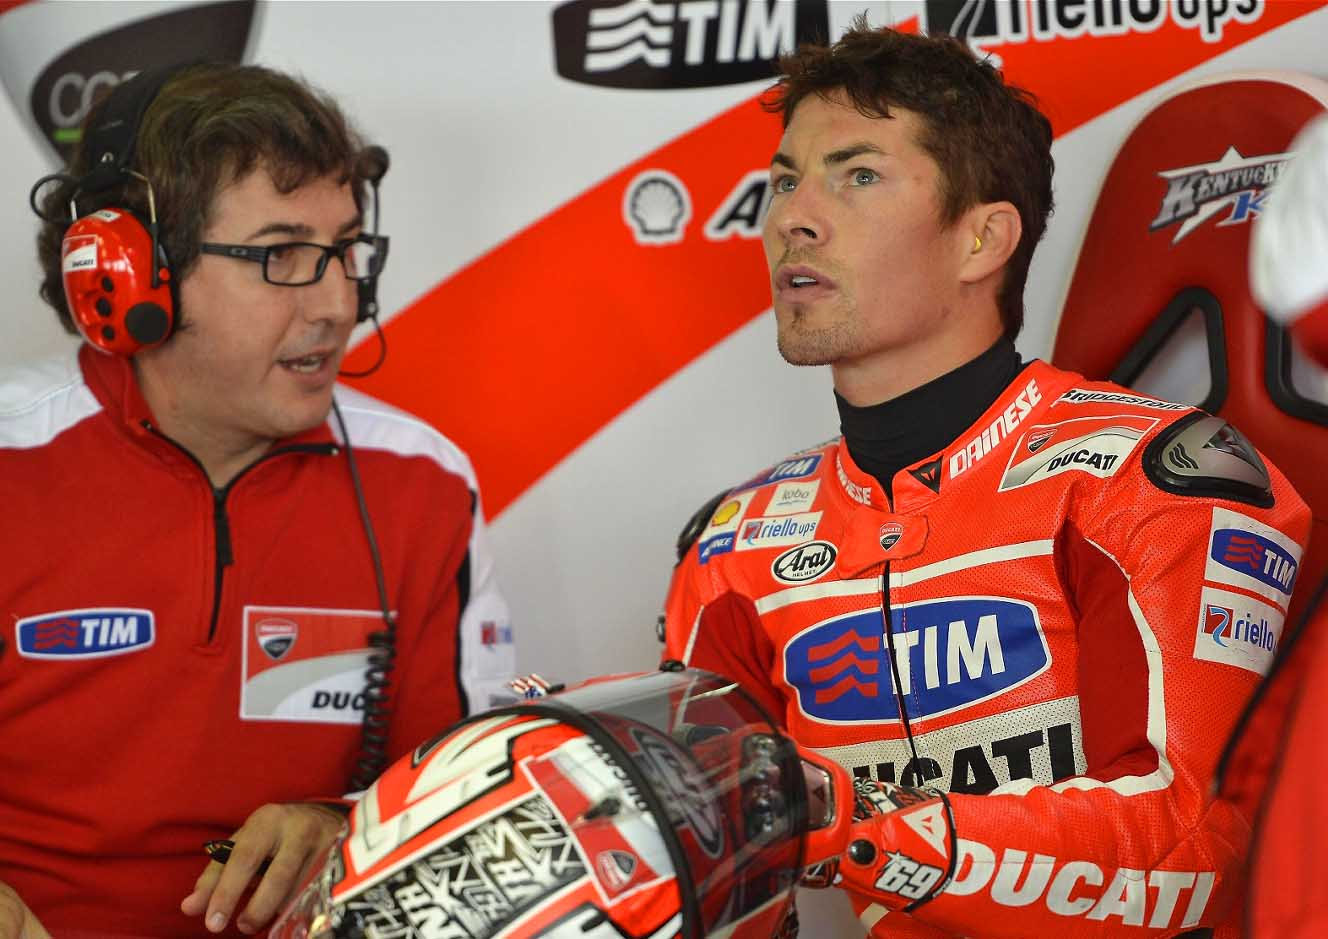 Ducati Hires Luigi Dalligna To Rescue Its Racing Efforts Or